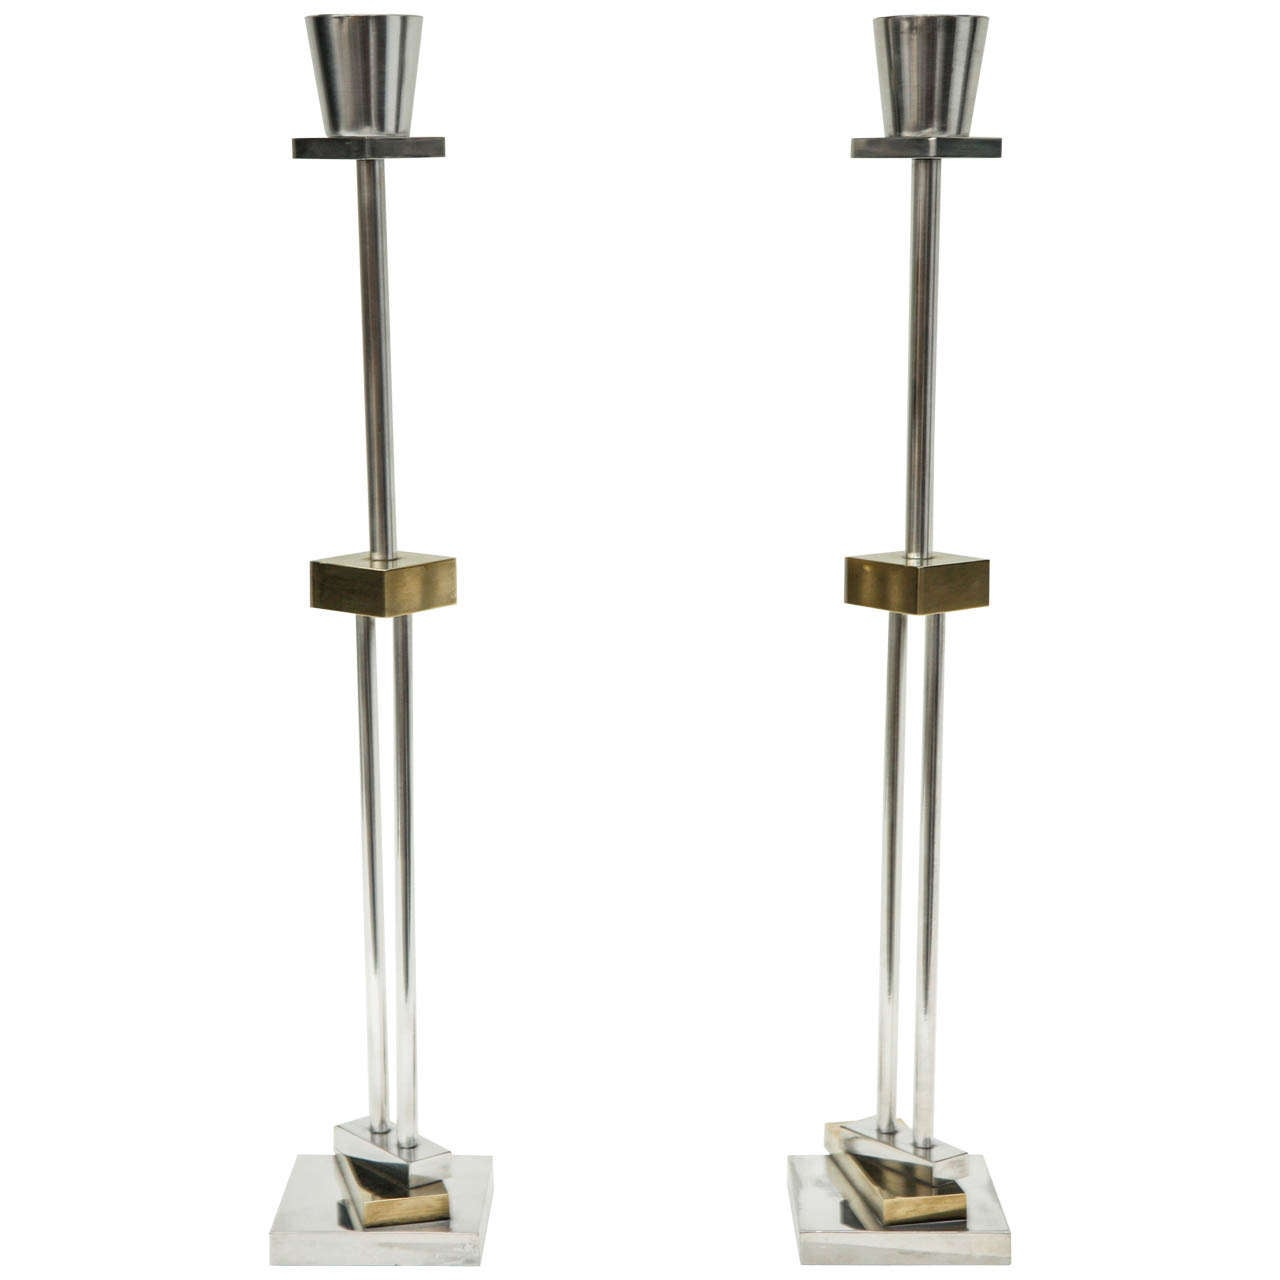 Pair of Silver Plate & Brass Candlesticks by Ettore Sottsass for Swid Powell